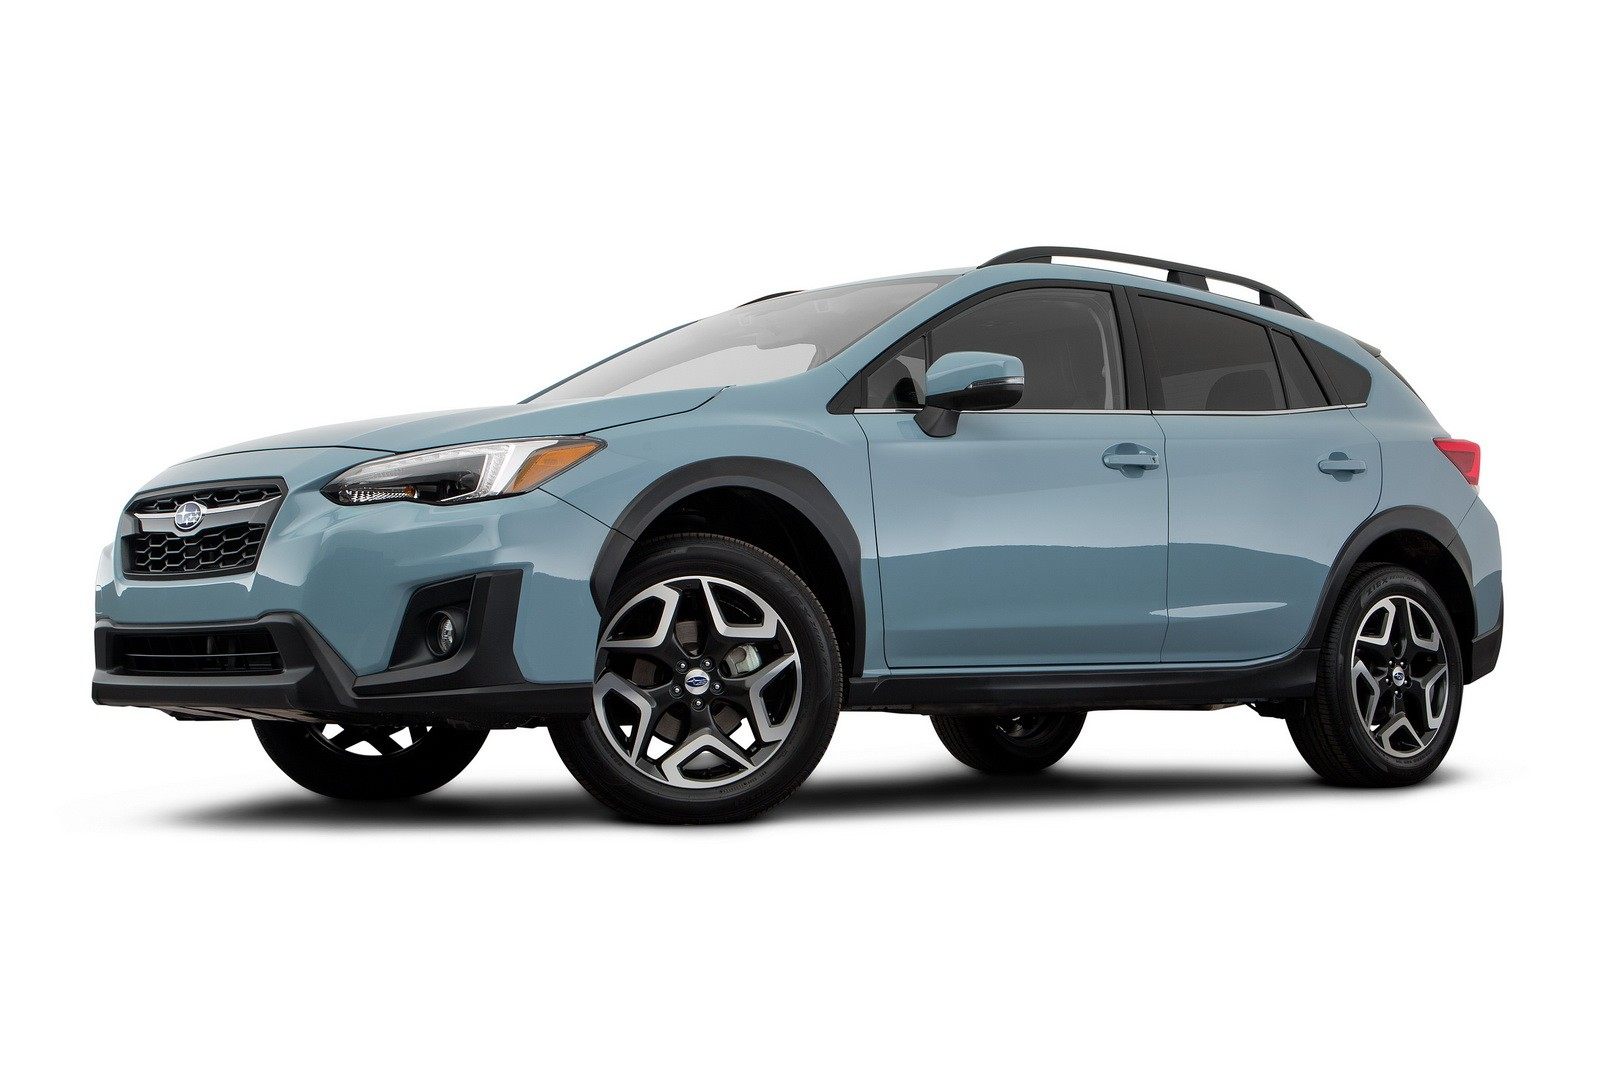 2019 Subaru Crosstrek Hybrid >> 2019 Subaru Crosstrek Hybrid Confirmed With Toyota's Plug-In Hybrid Technology - autoevolution